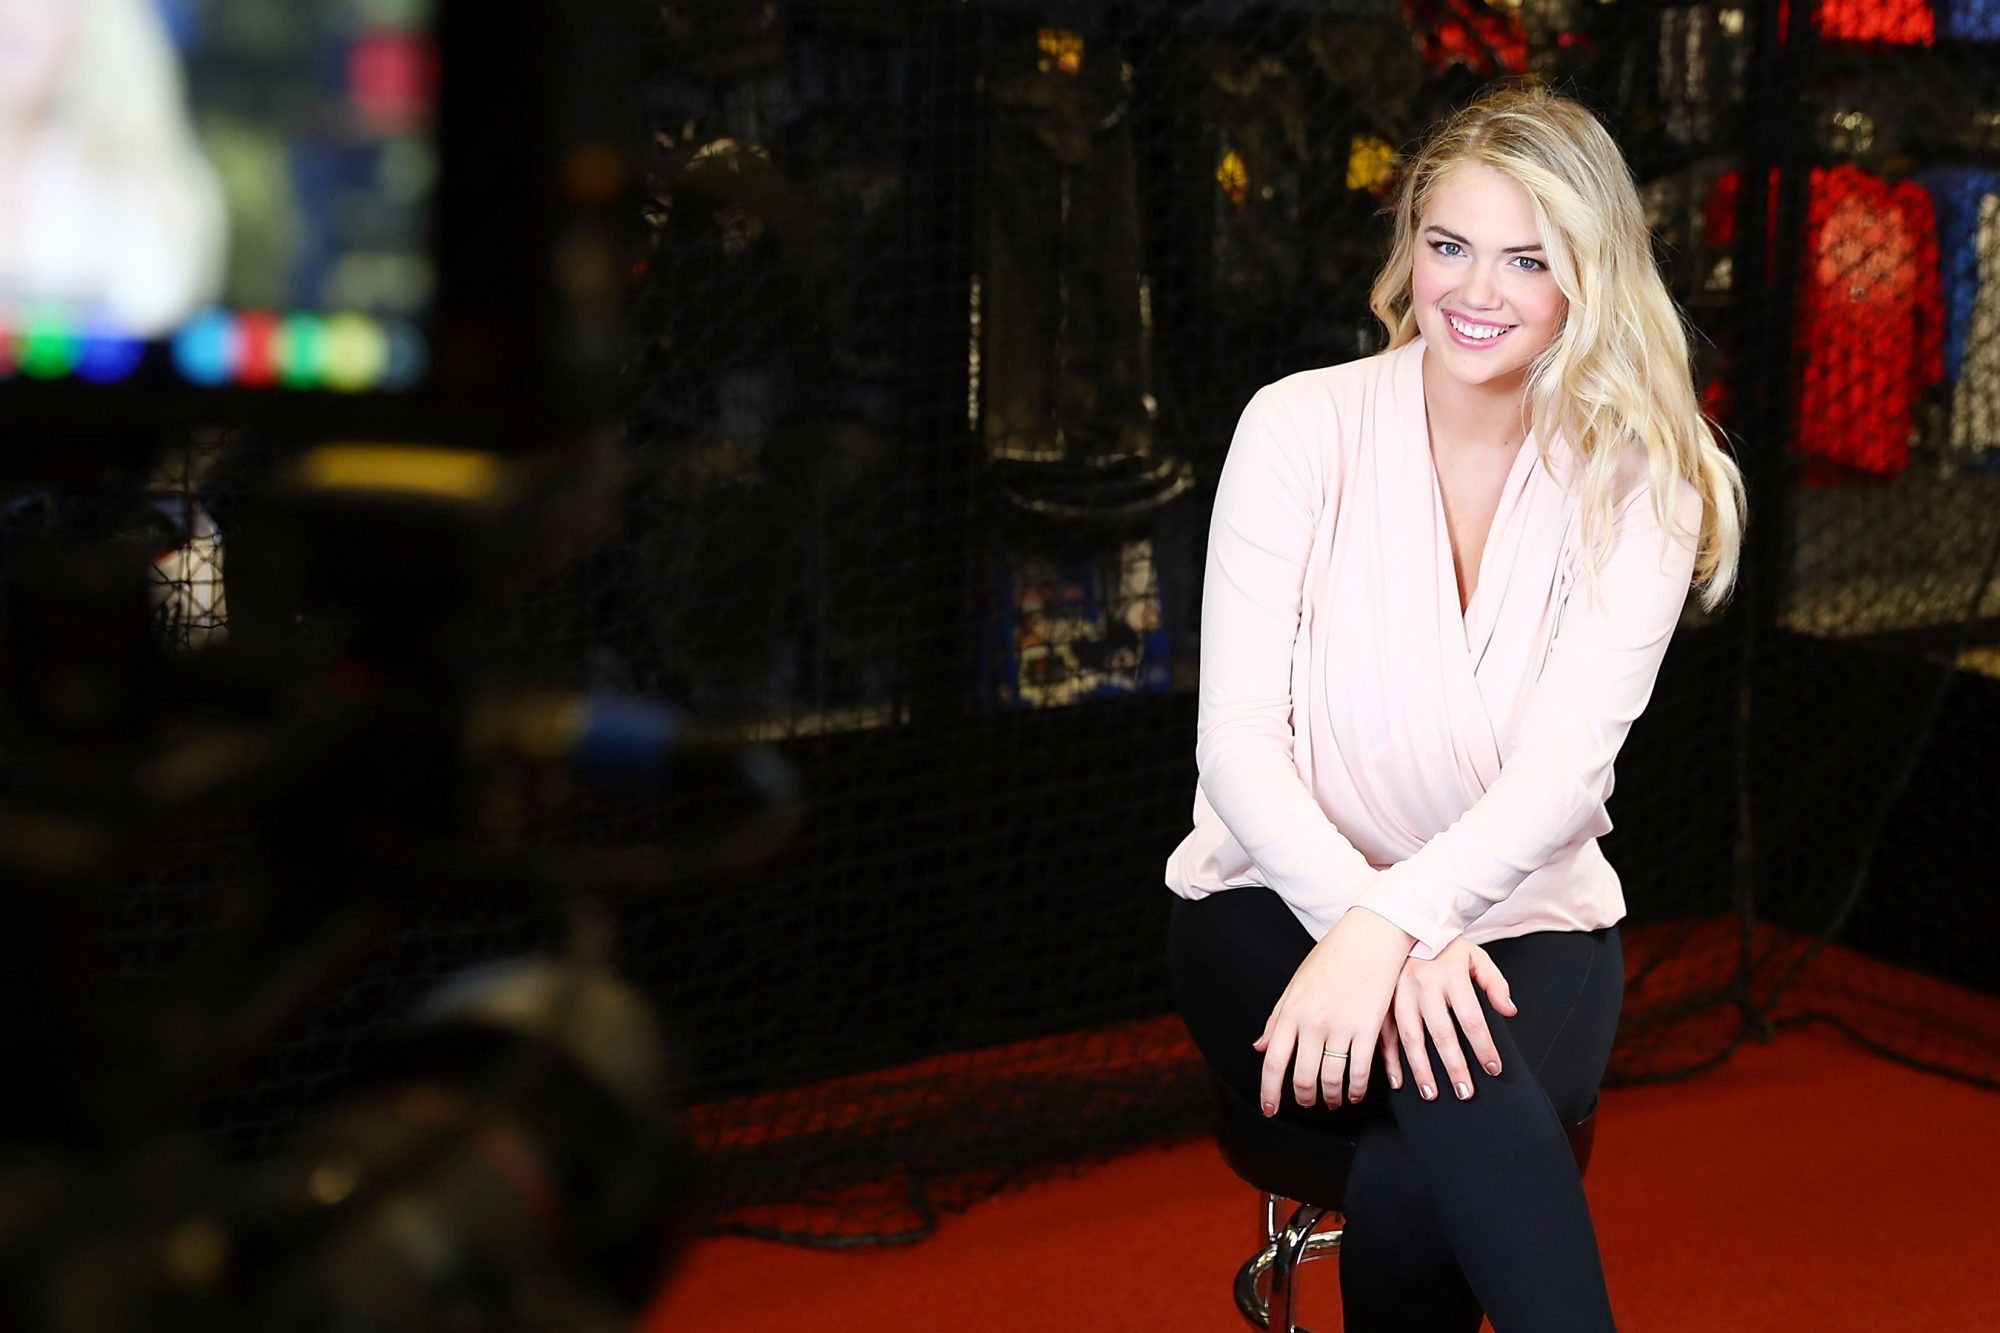 Copper Fit Brand Ambassador Kate Upton At Dick's Sporting Goods